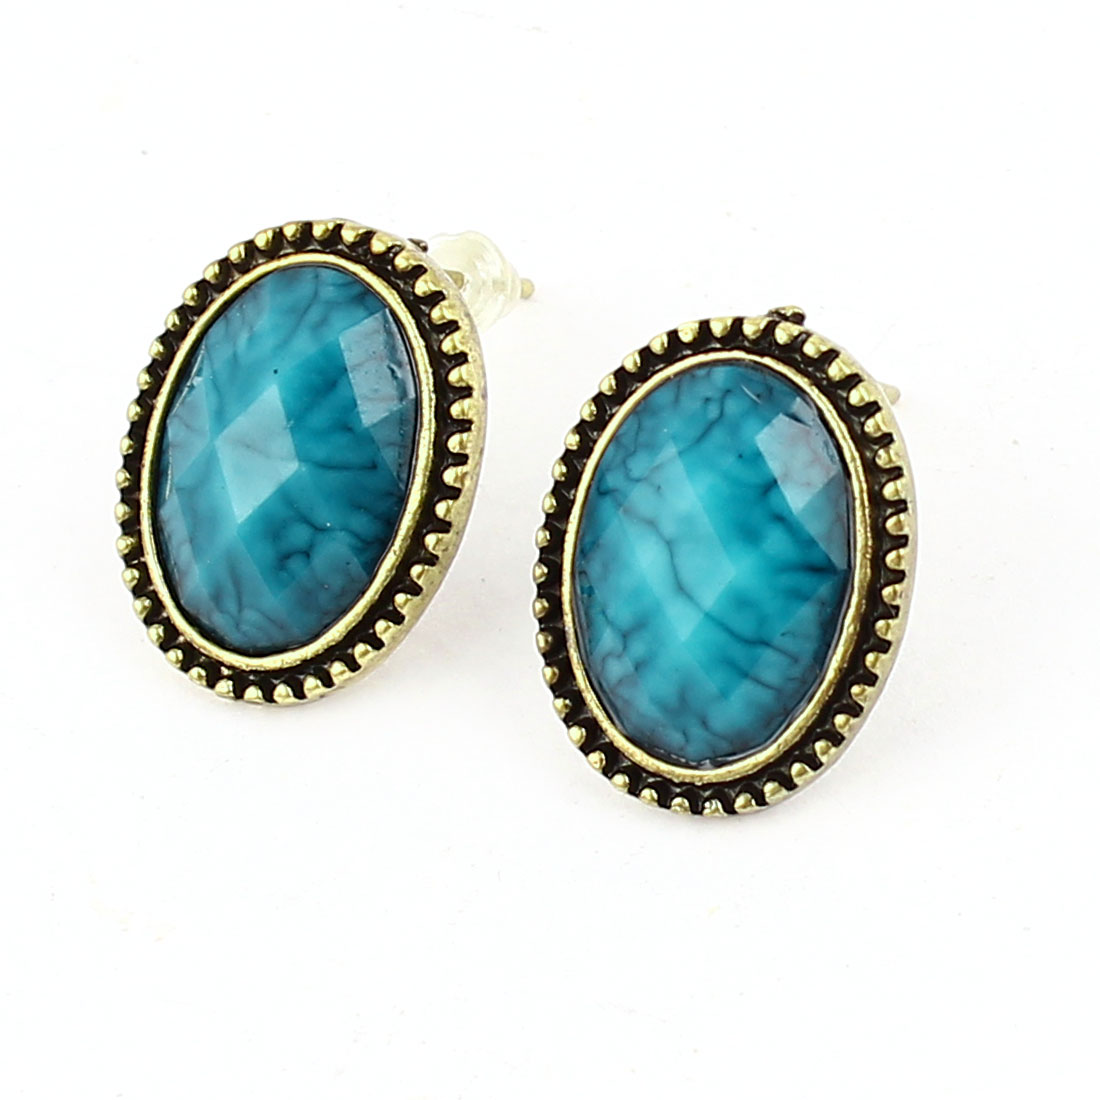 Pair Blue Faceted Beads Oval Shaped Bronze Tone Stud Earring for Lady